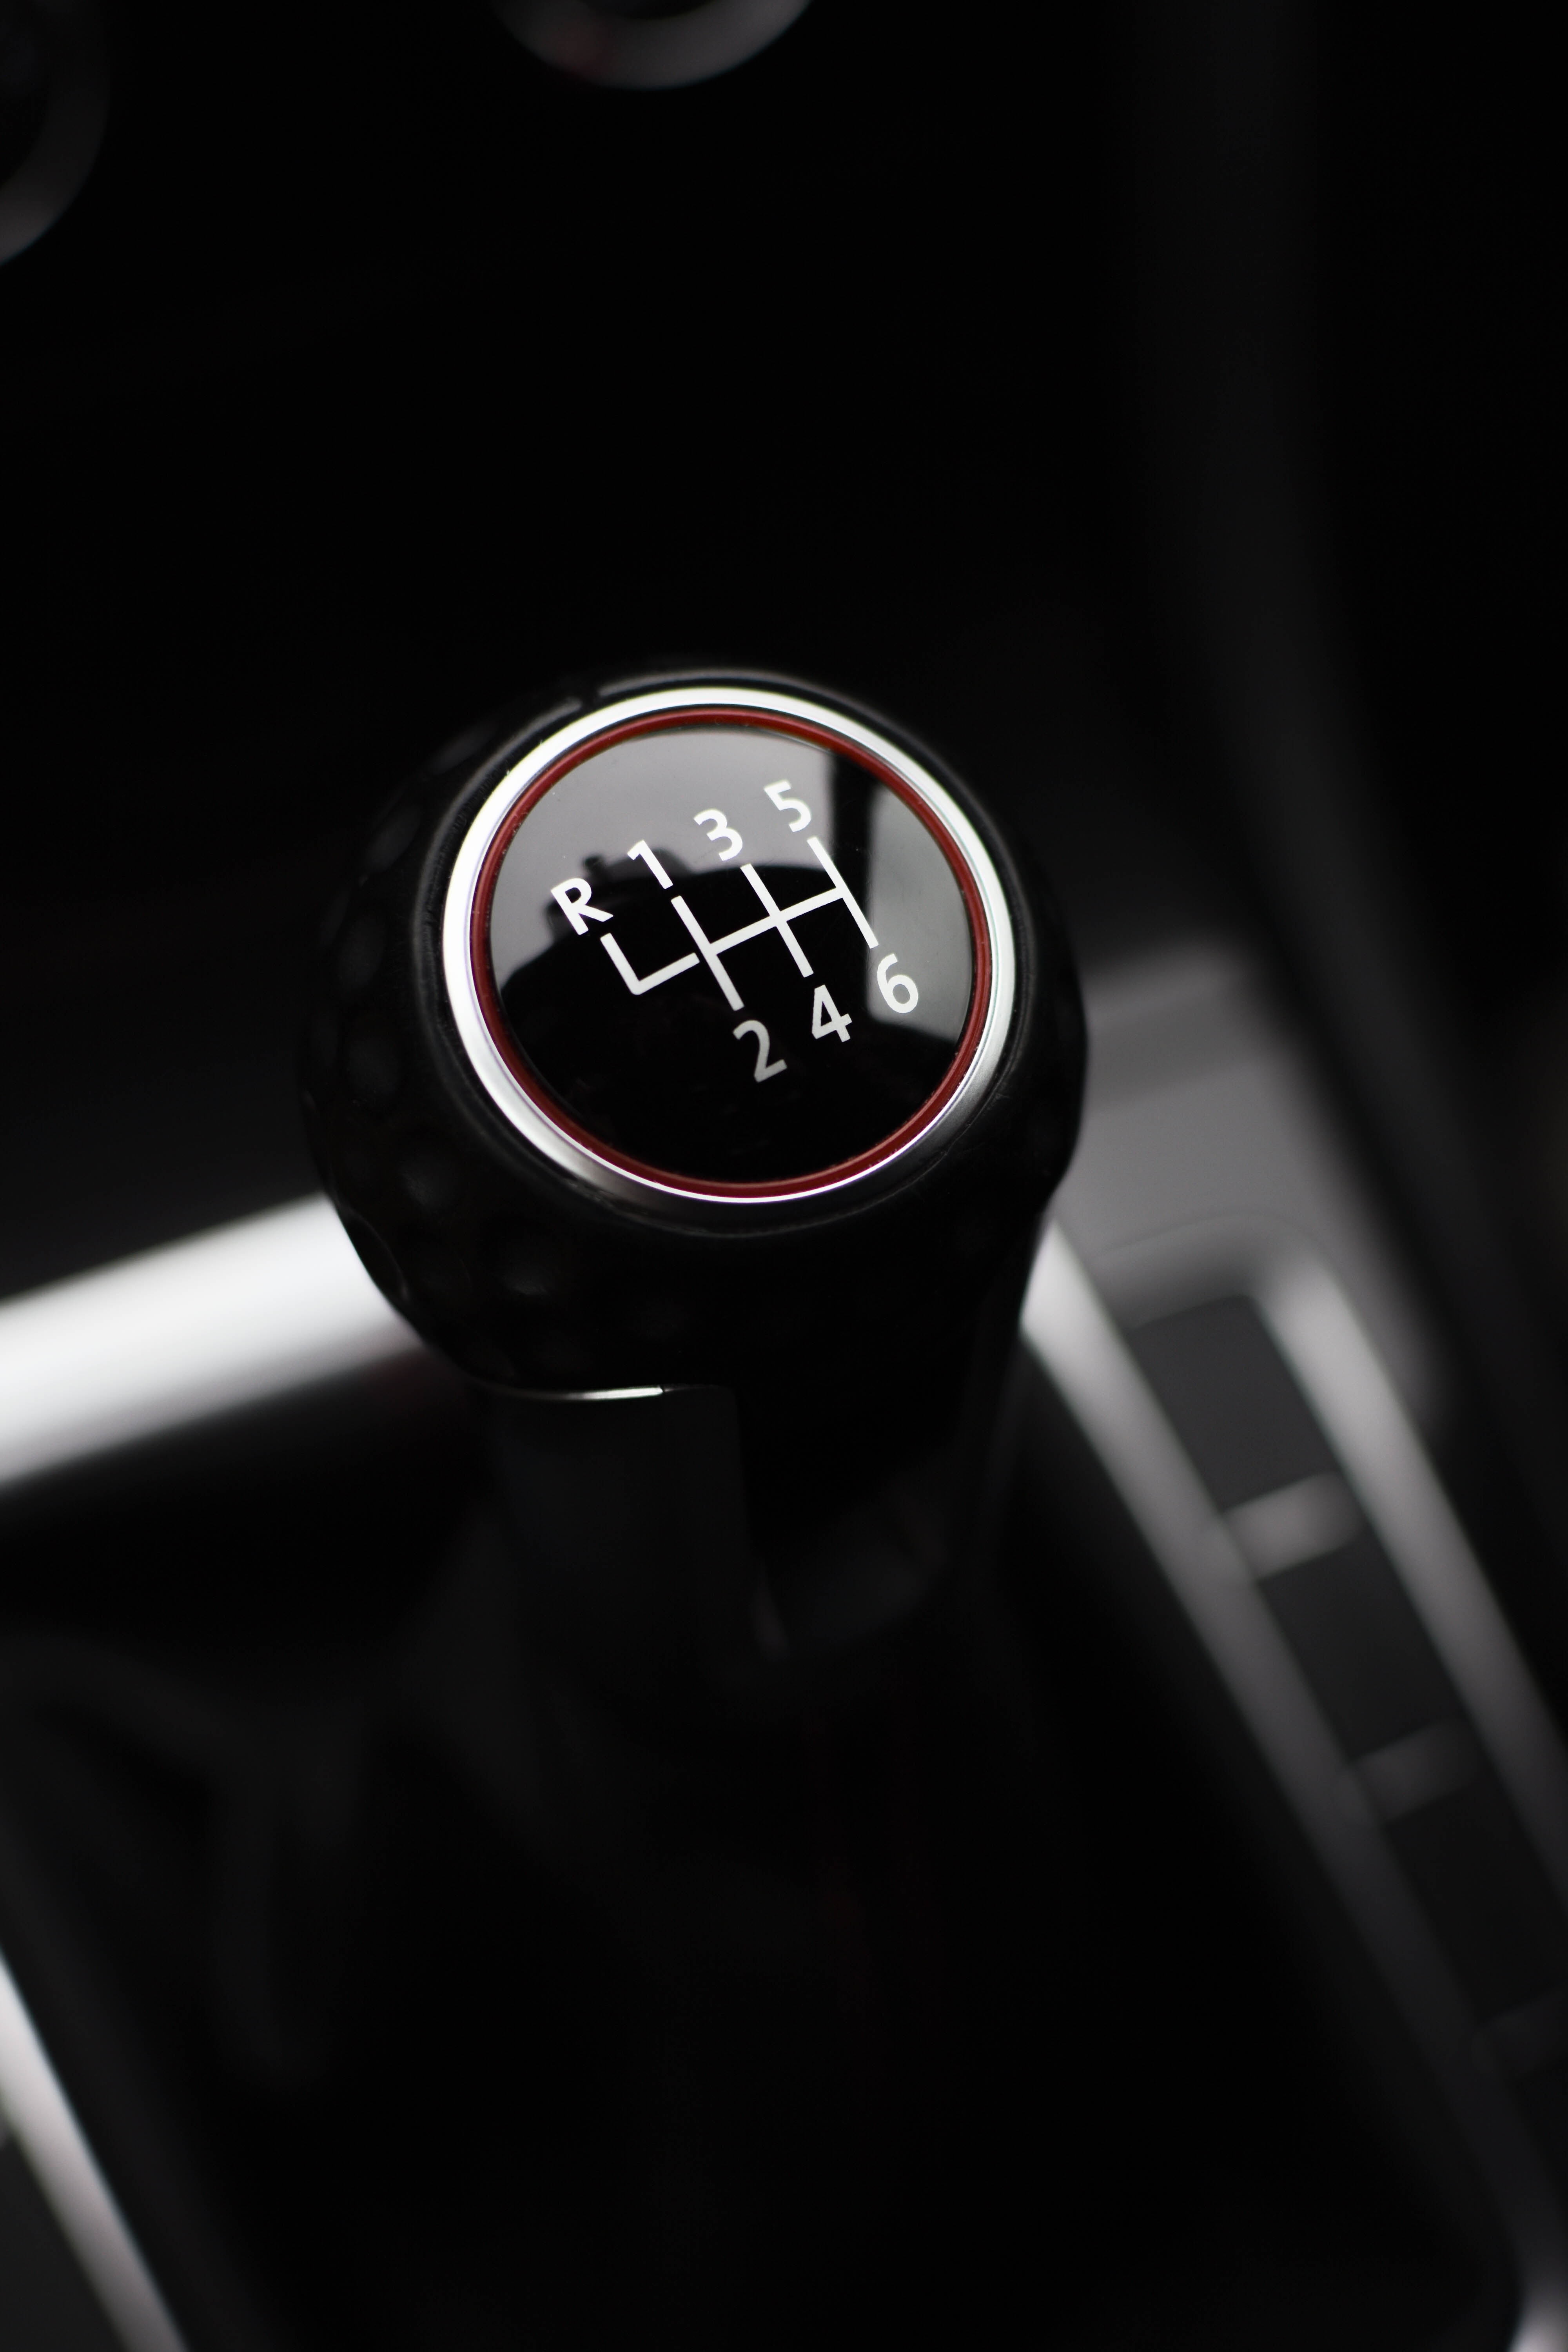 Manual Testing represented by gear stick